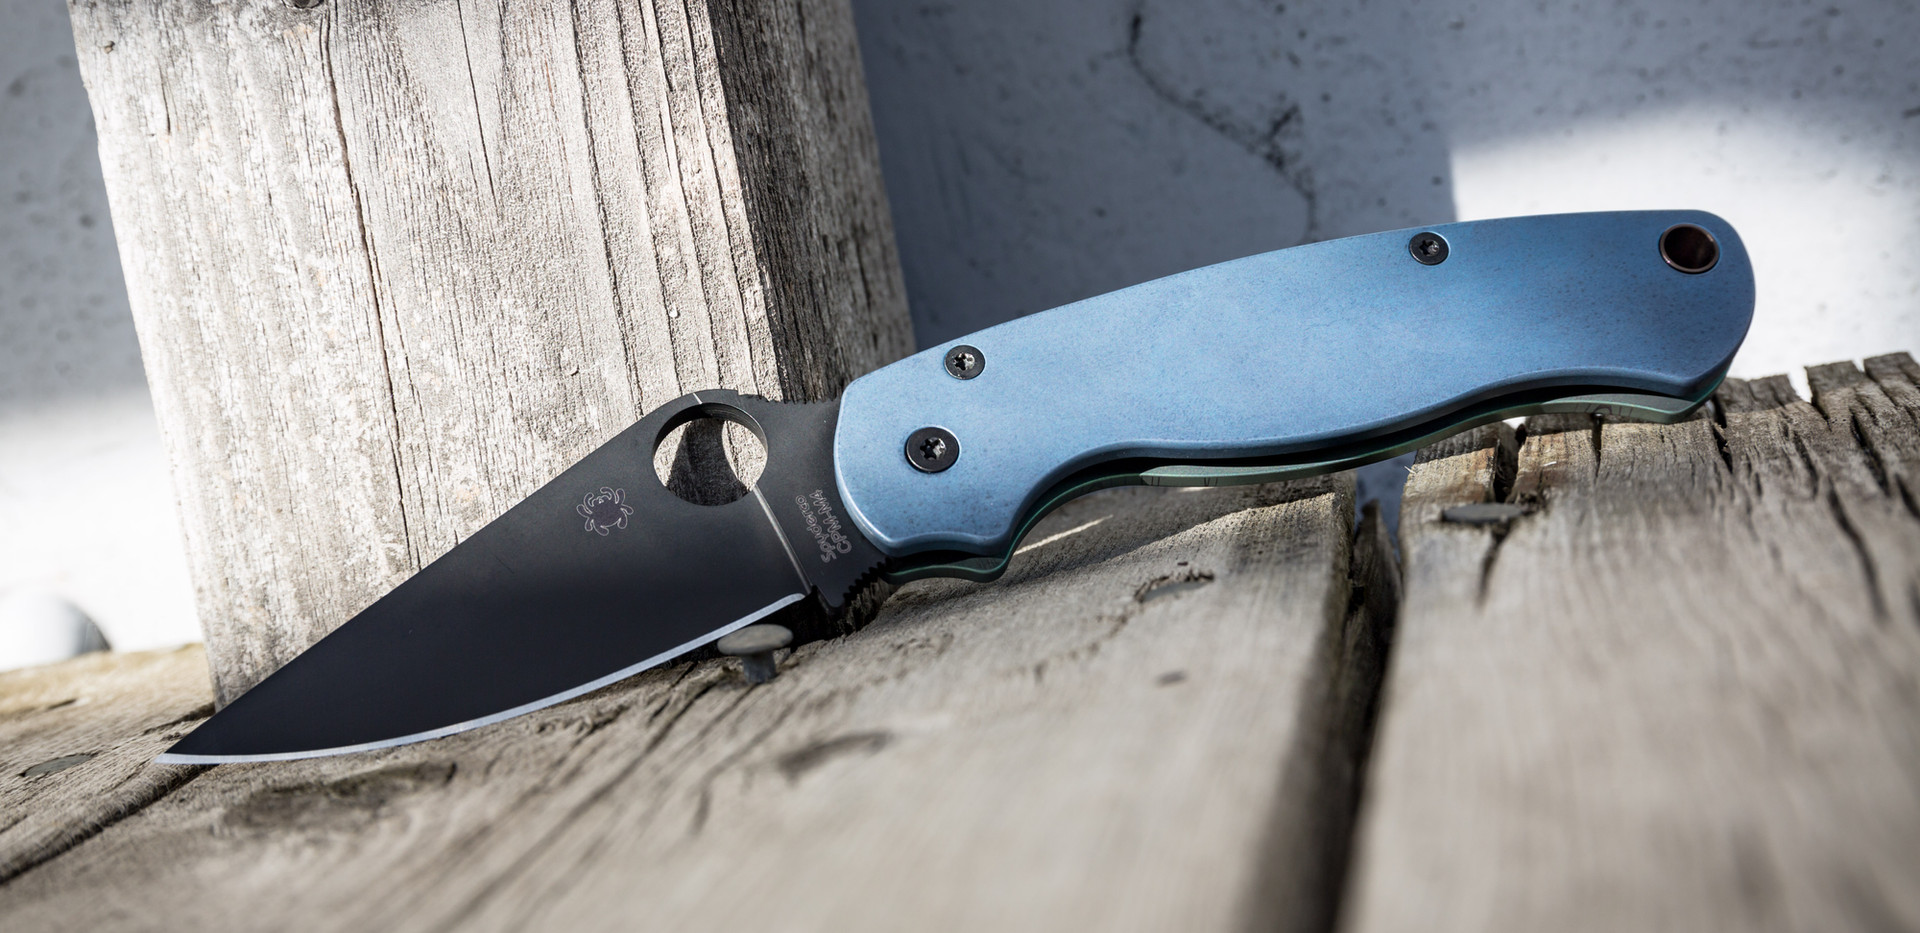 Simple Spyderco with single layer anodizing